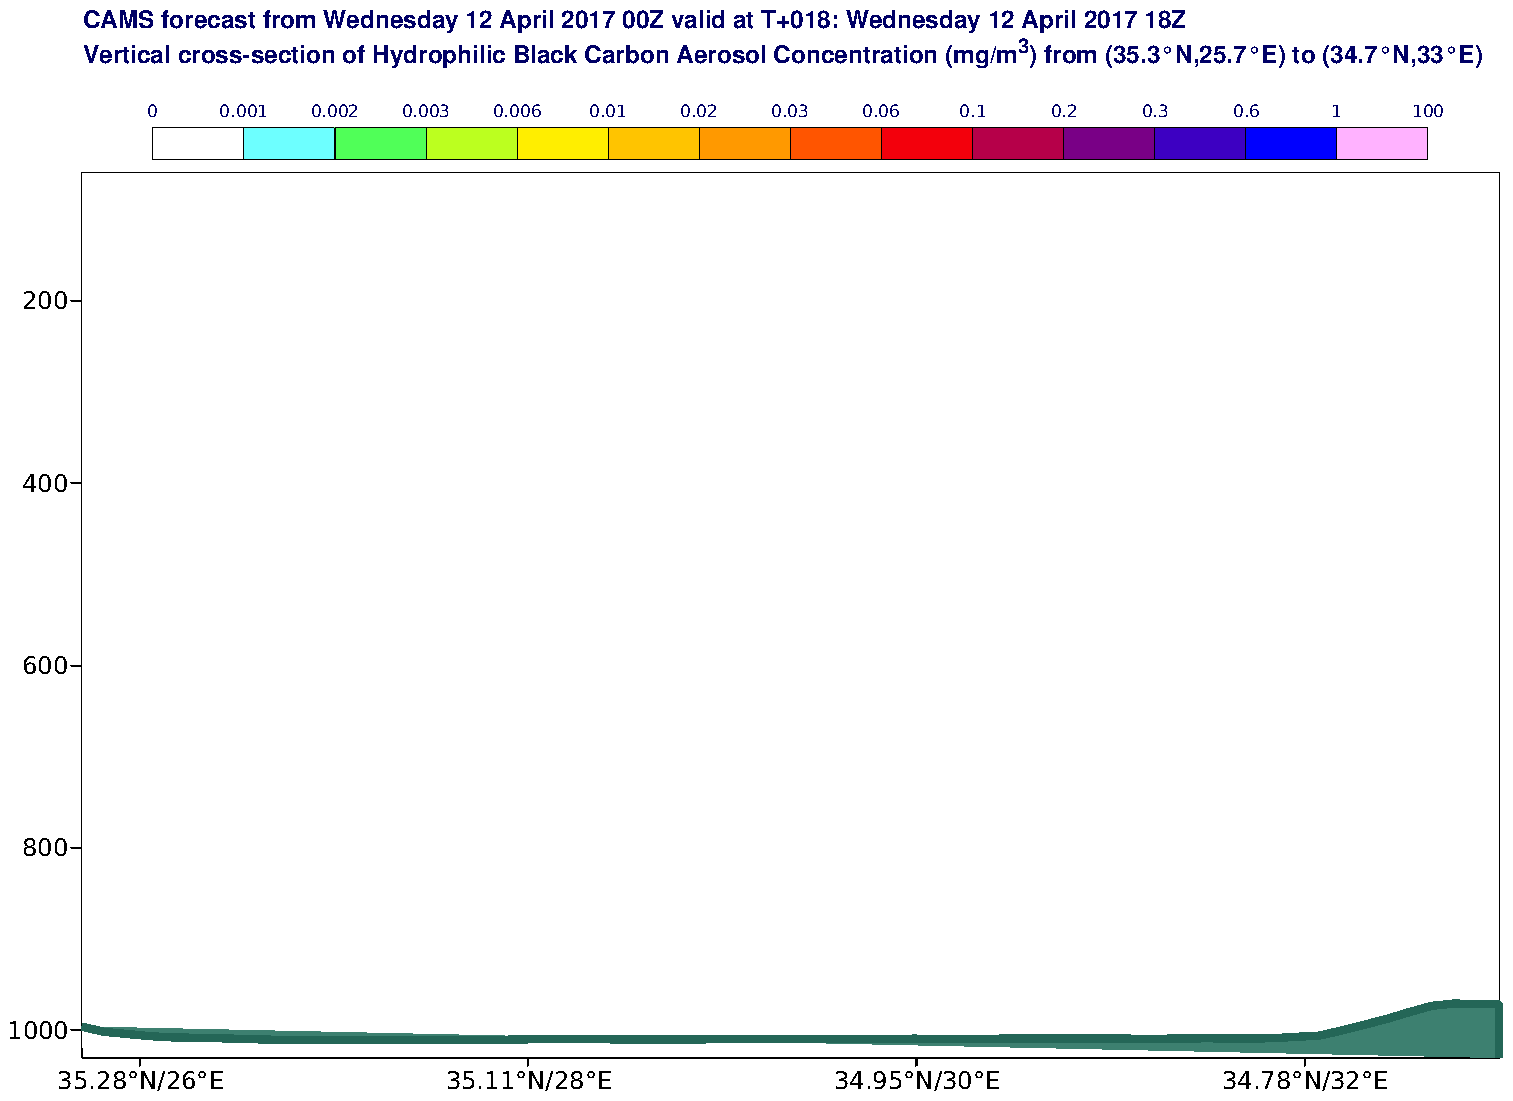 Vertical cross-section of Hydrophilic Black Carbon Aerosol Concentration (mg/m3) valid at T18 - 2017-04-12 18:00